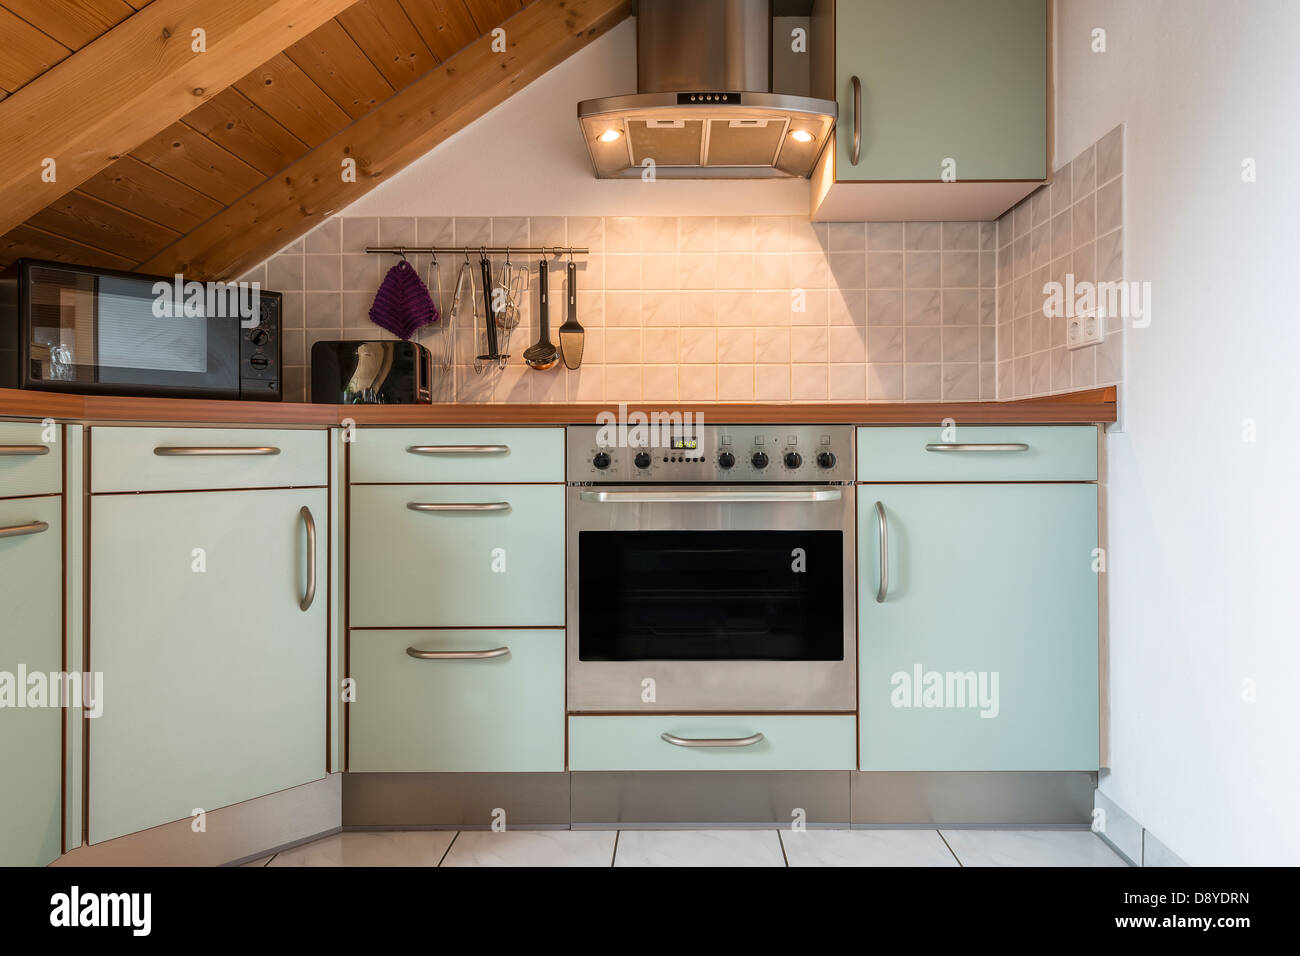 tile stove stockfotos tile stove bilder alamy. Black Bedroom Furniture Sets. Home Design Ideas